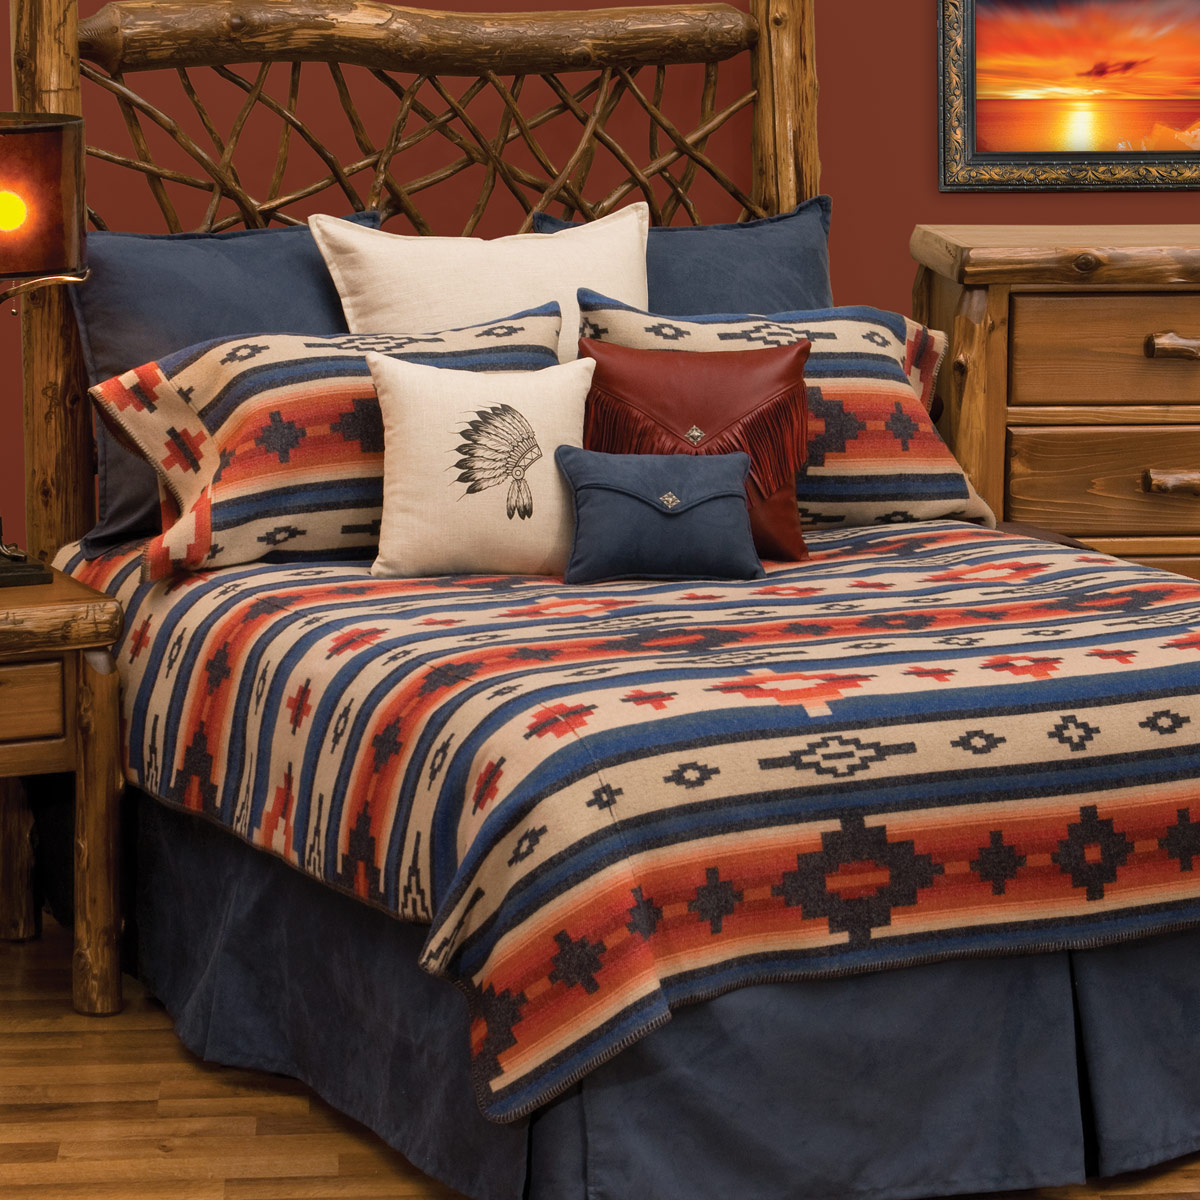 Black Forest Decor Redrock canyon bedspread - twin